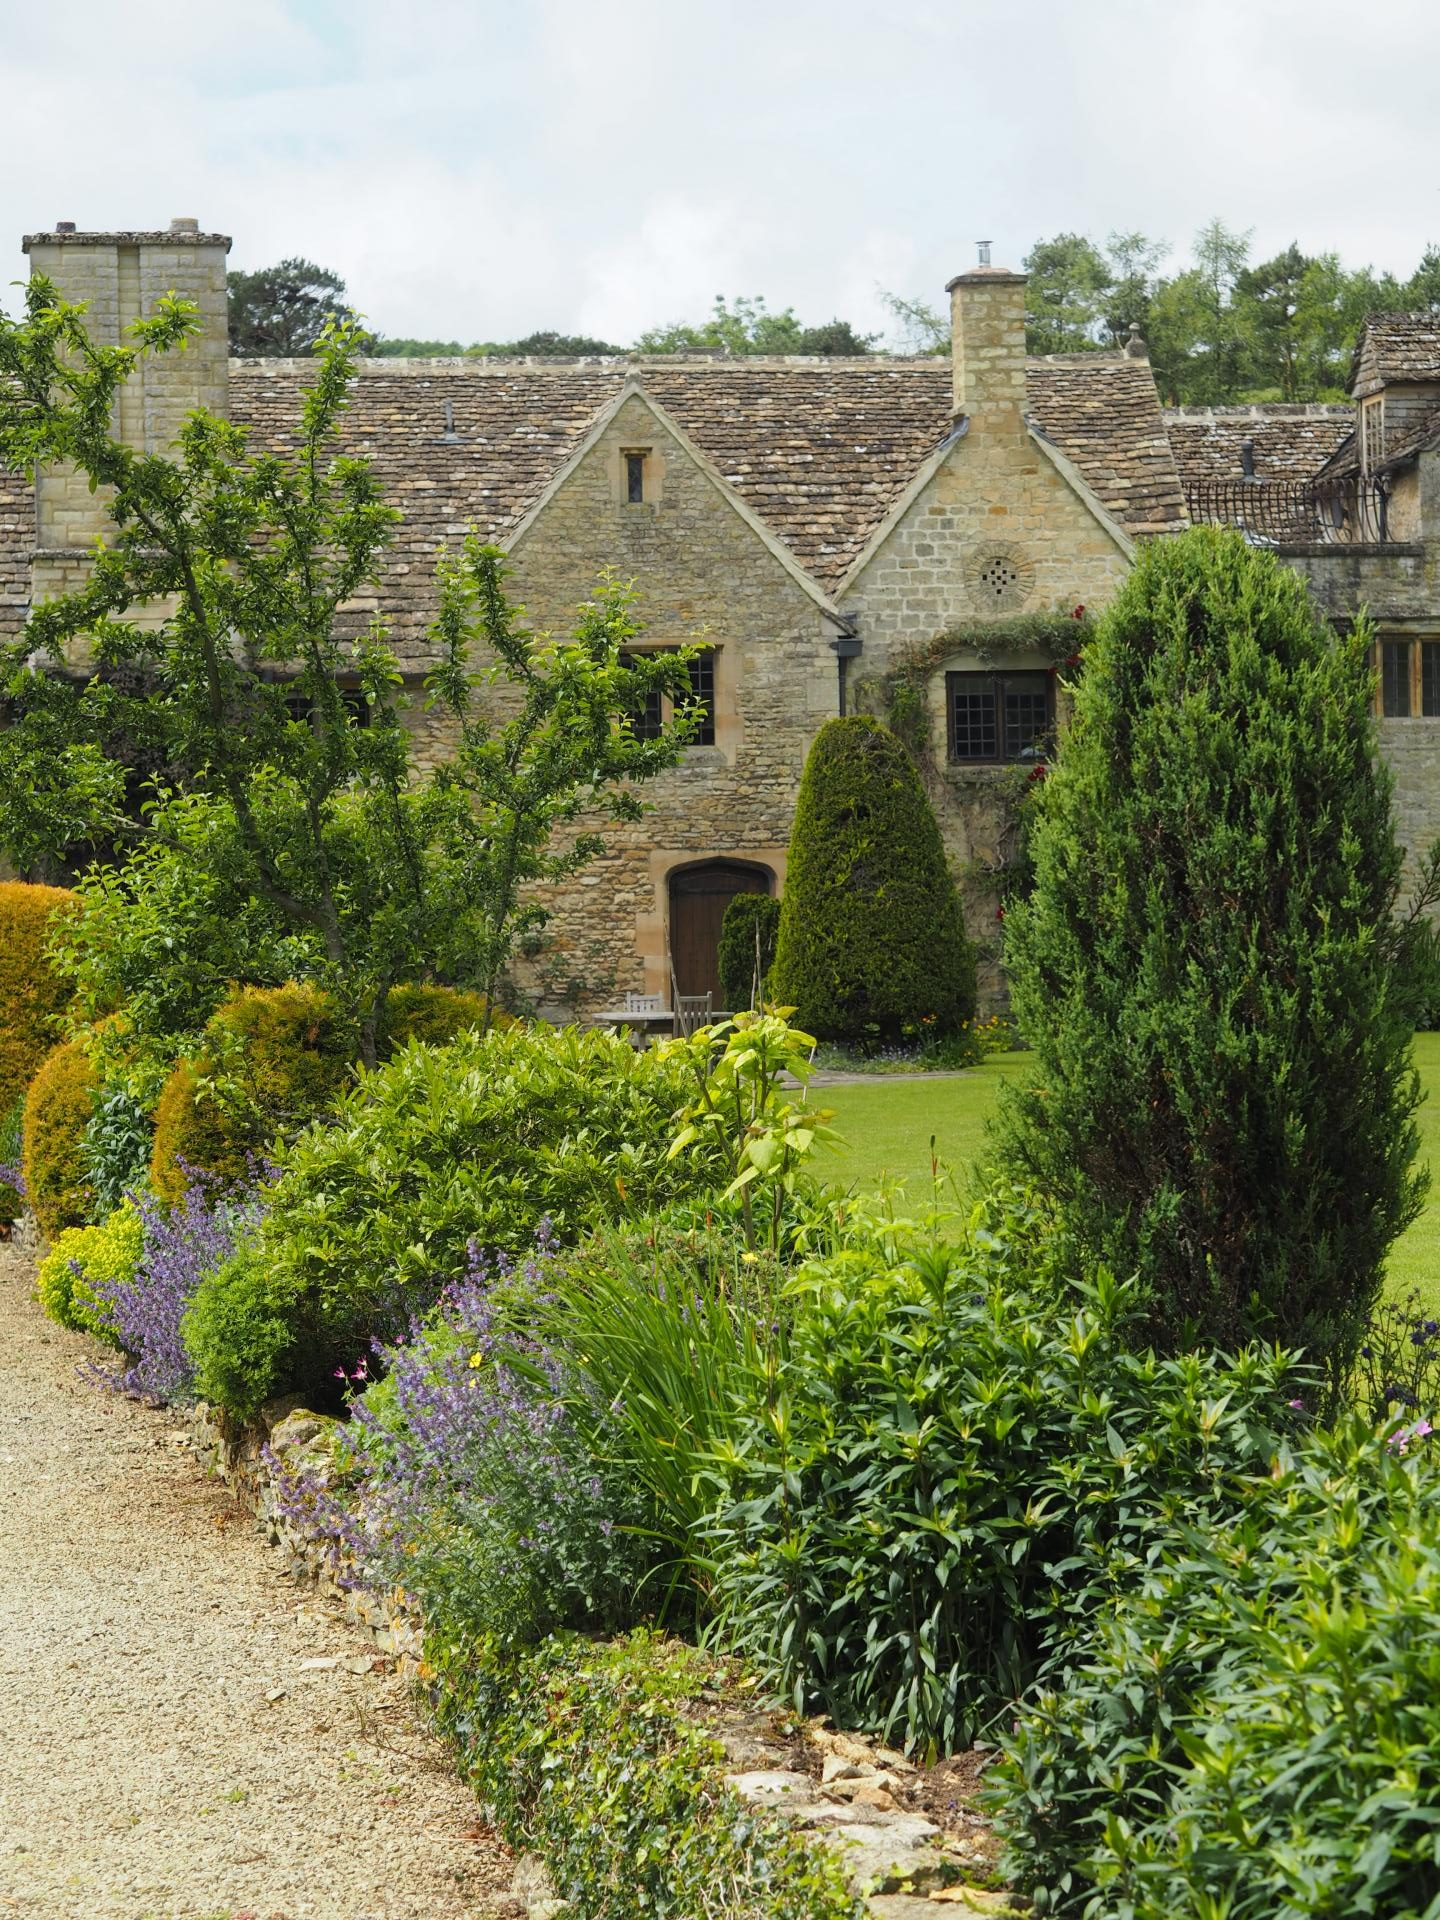 Escape from London: A Luxury Cotswolds Country Break at Marsden Manor with Kate & Toms